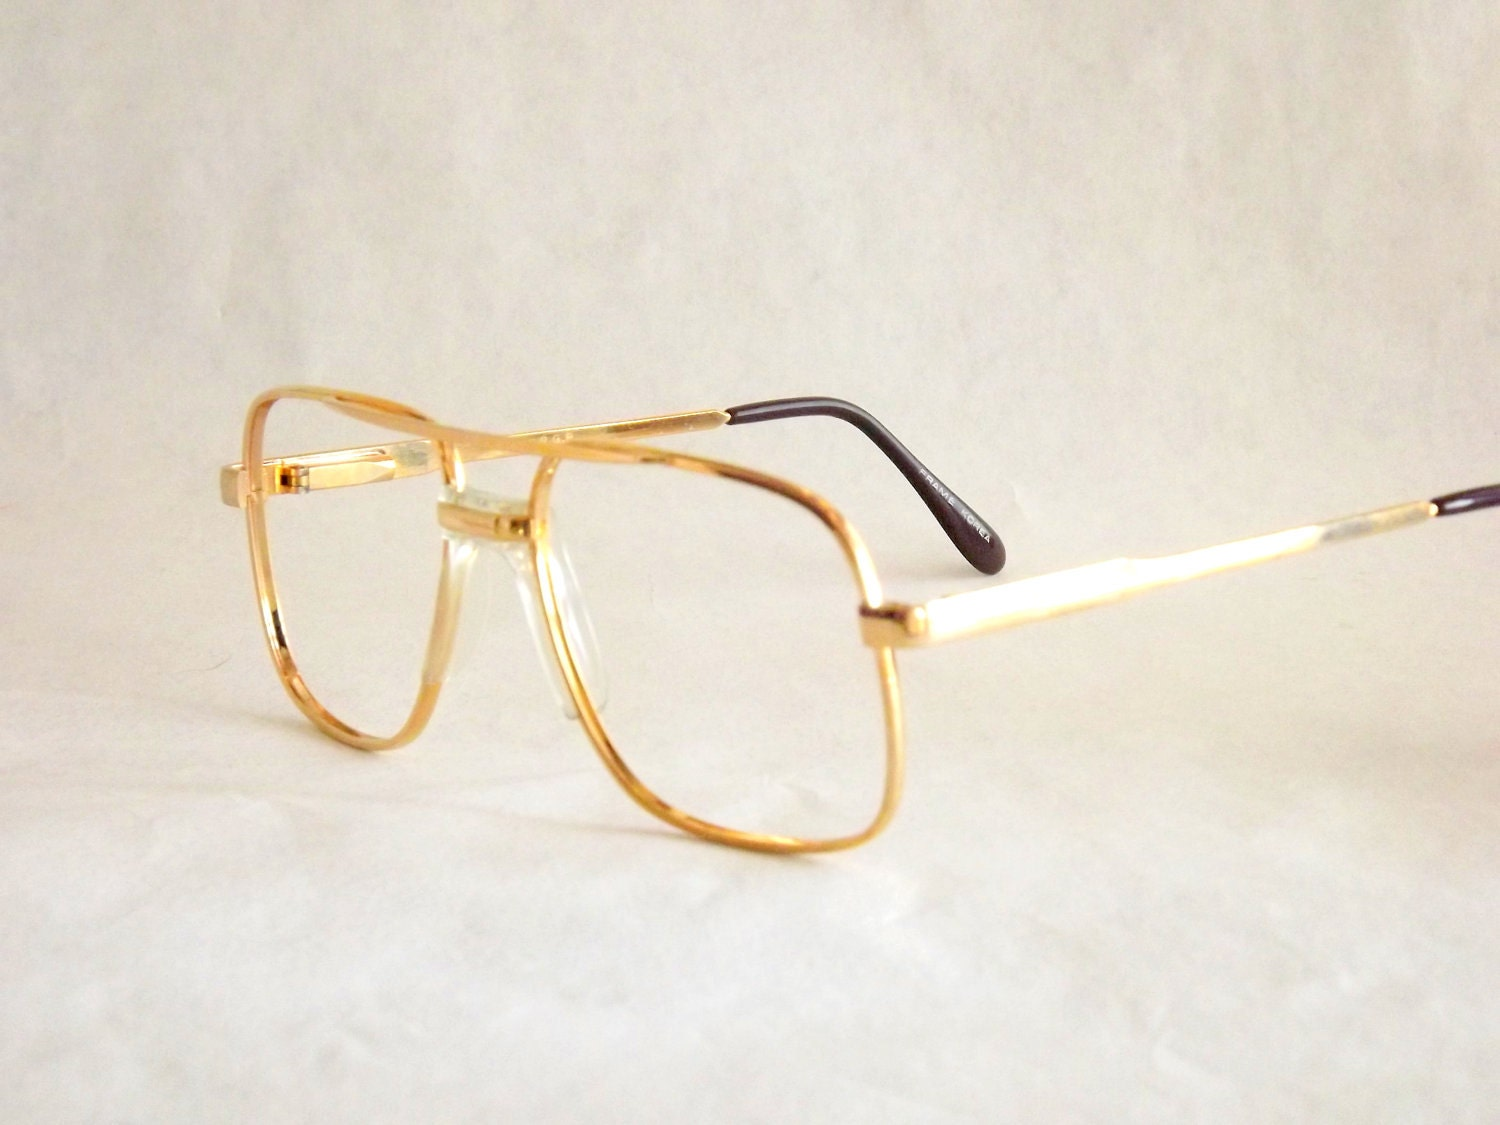 Gold Metal Glasses Frames : Industrial Metal Mens Gold Aviator Eyeglasses / Fixed Bridge